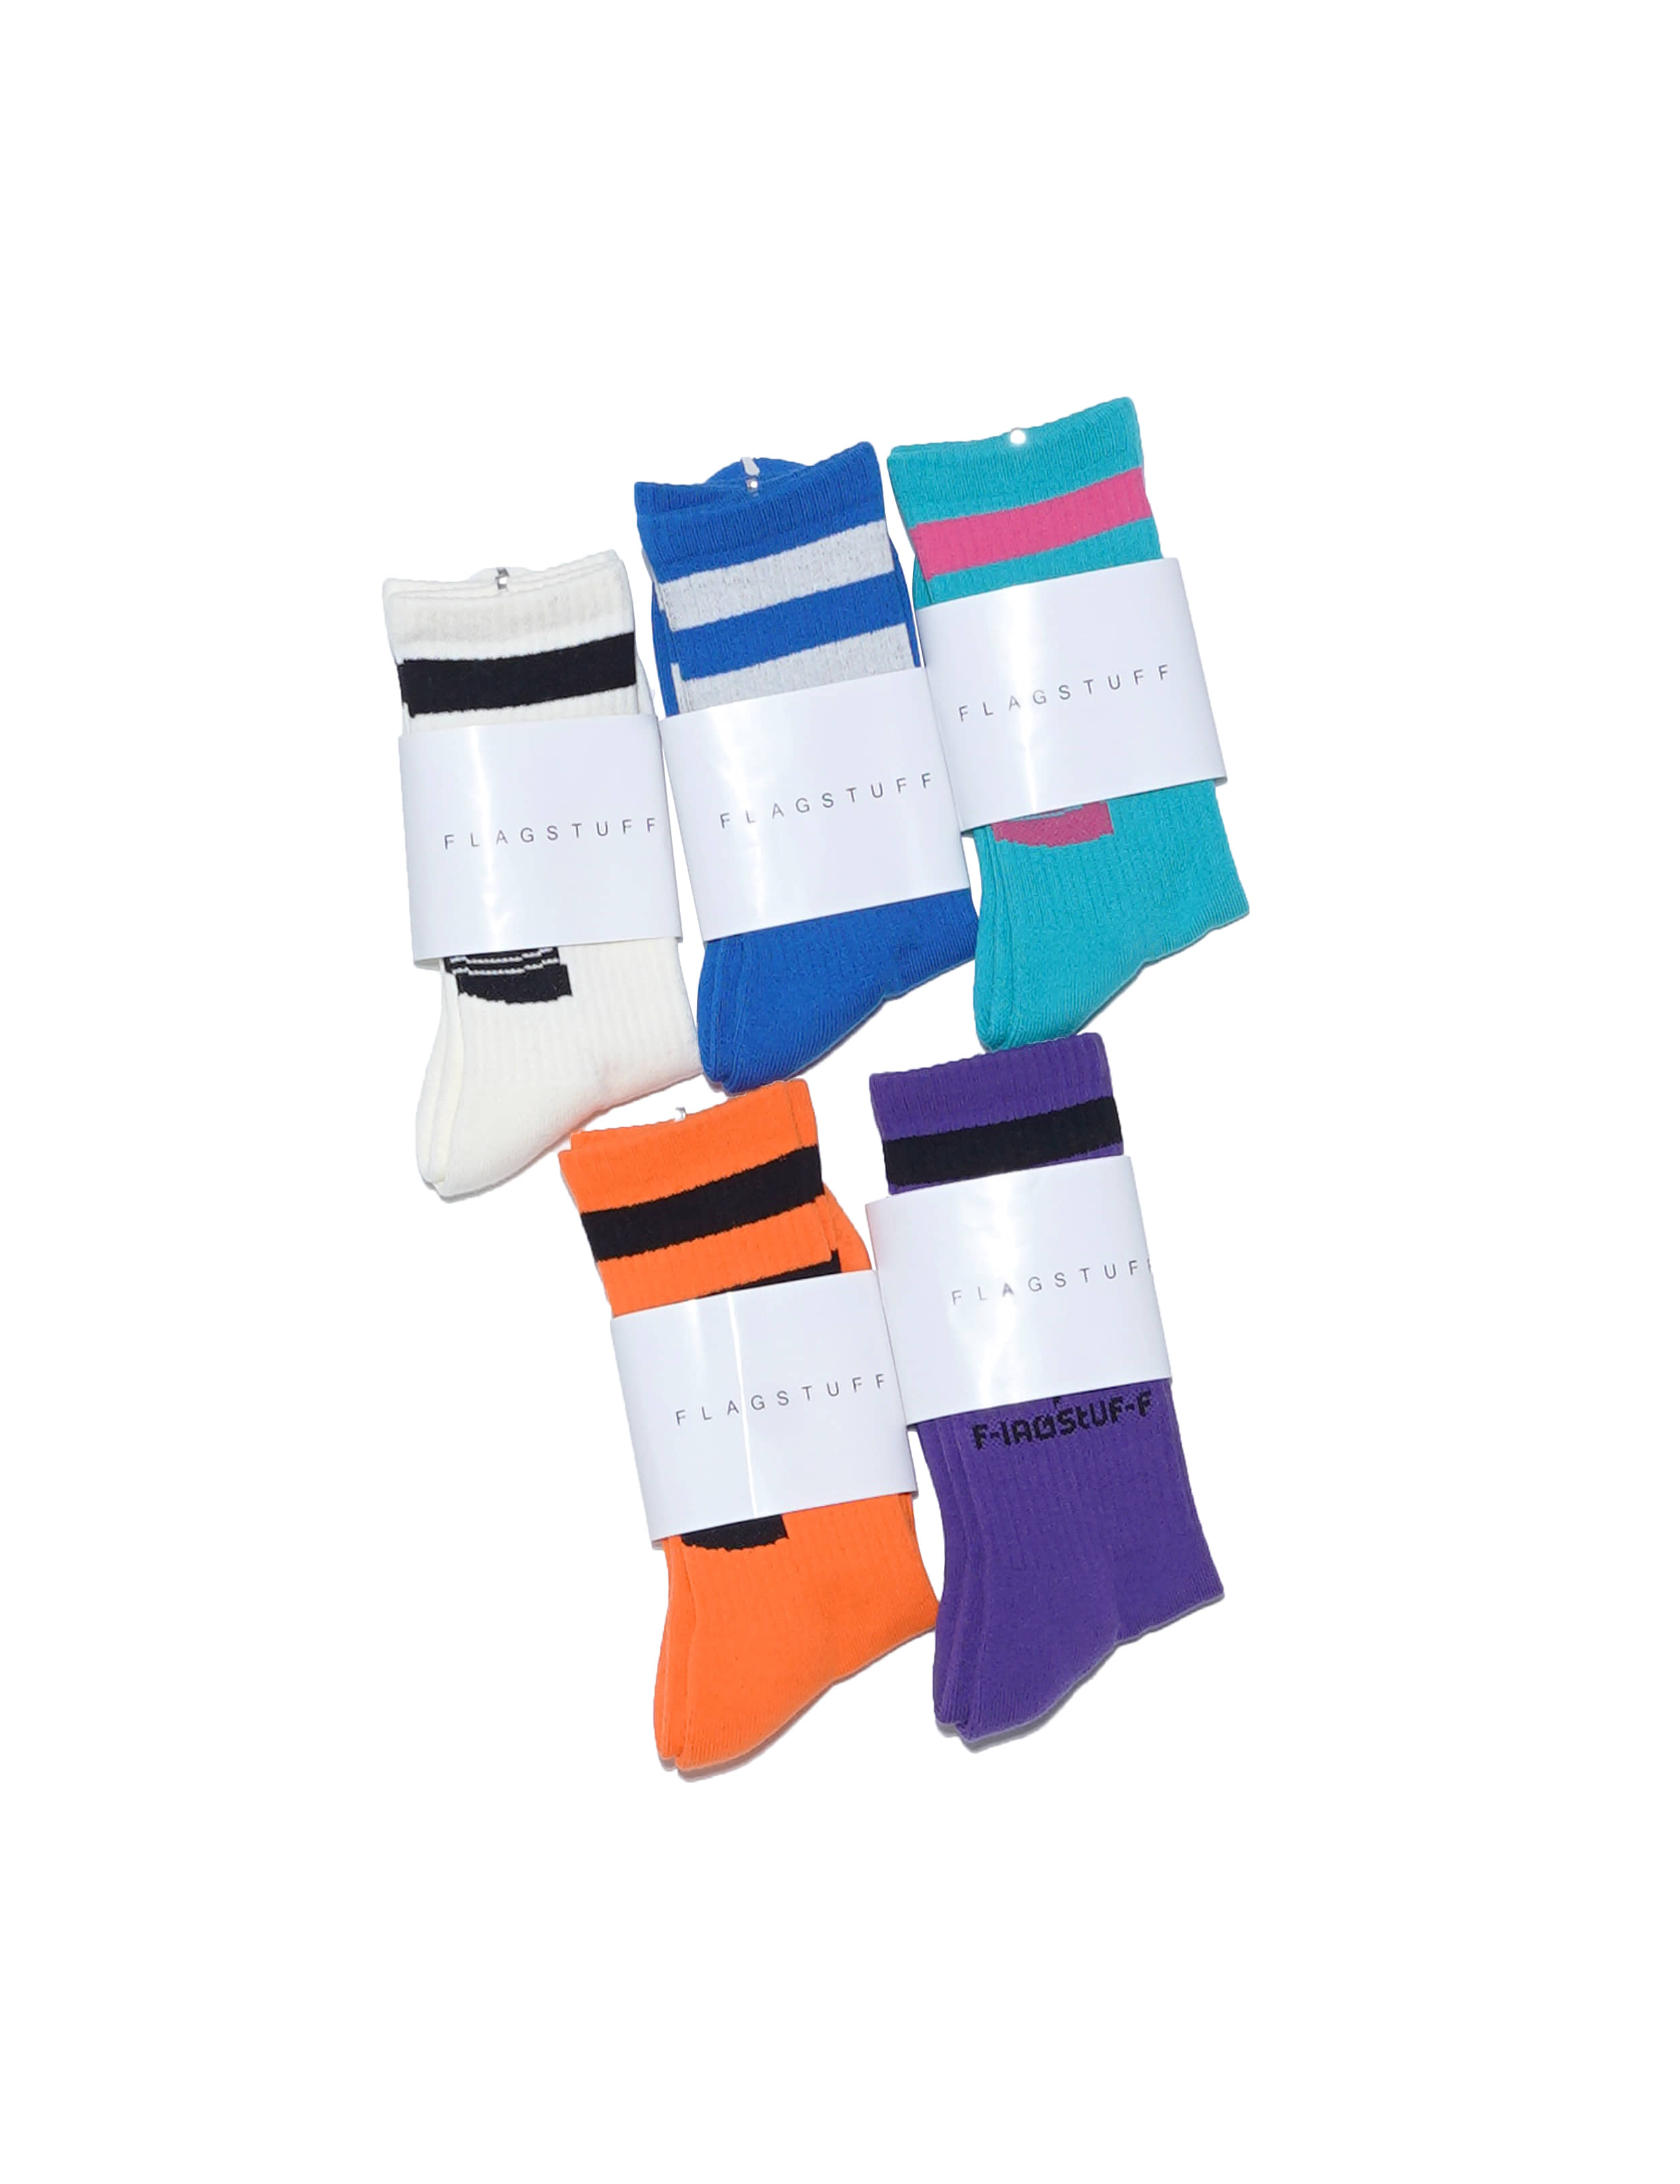 """PS LOGO"" SOX (5 COLORS)"